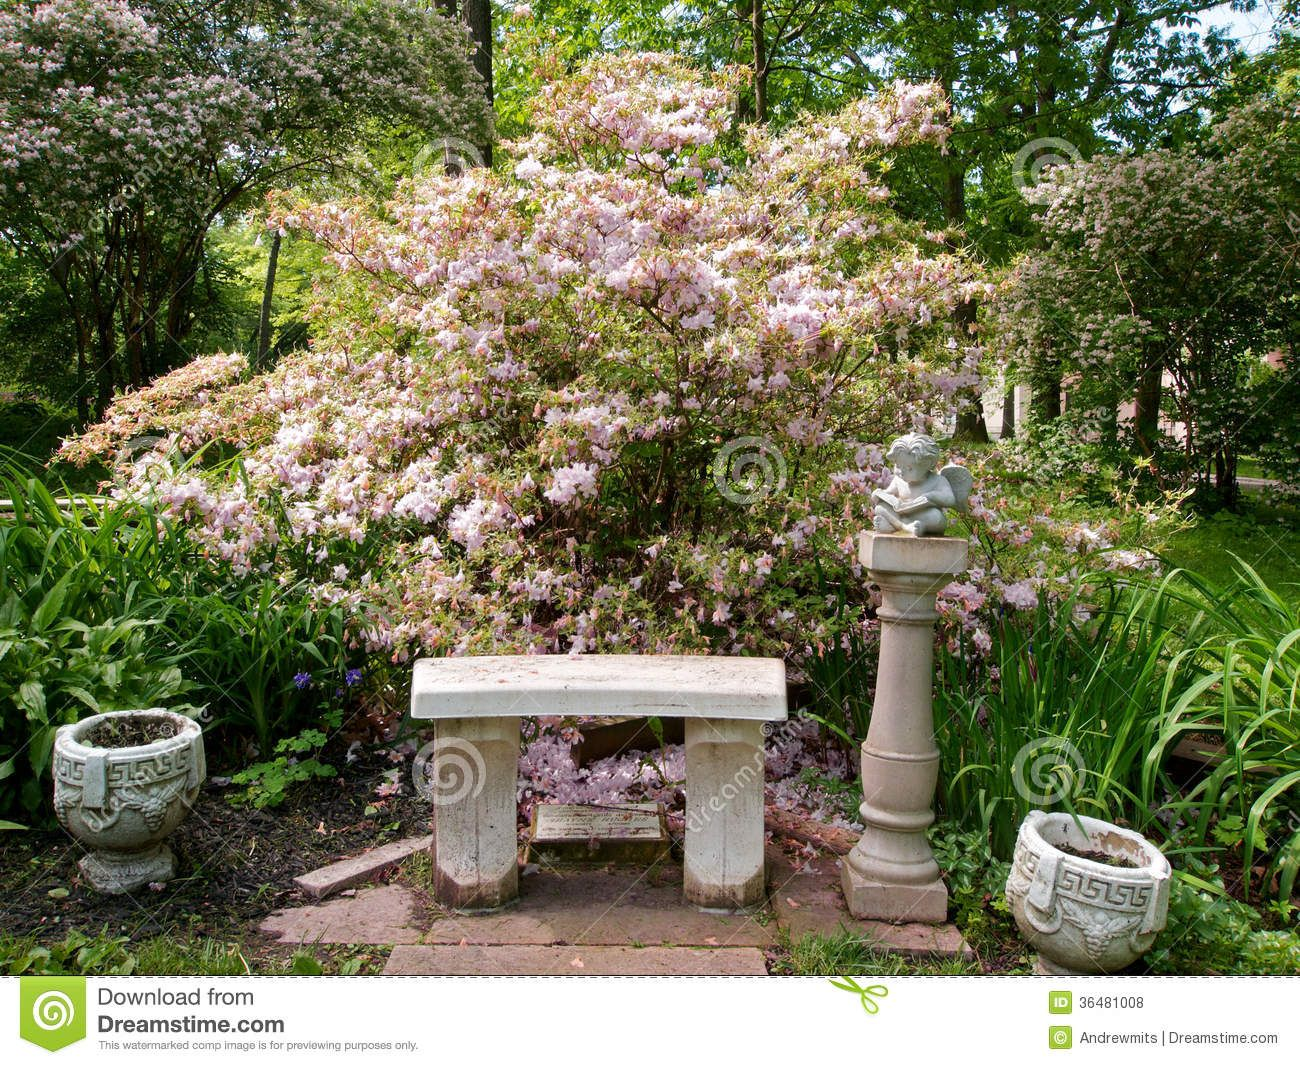 Outdoor Sitting Area in mulch | Stone bench, flower pots and statue ...